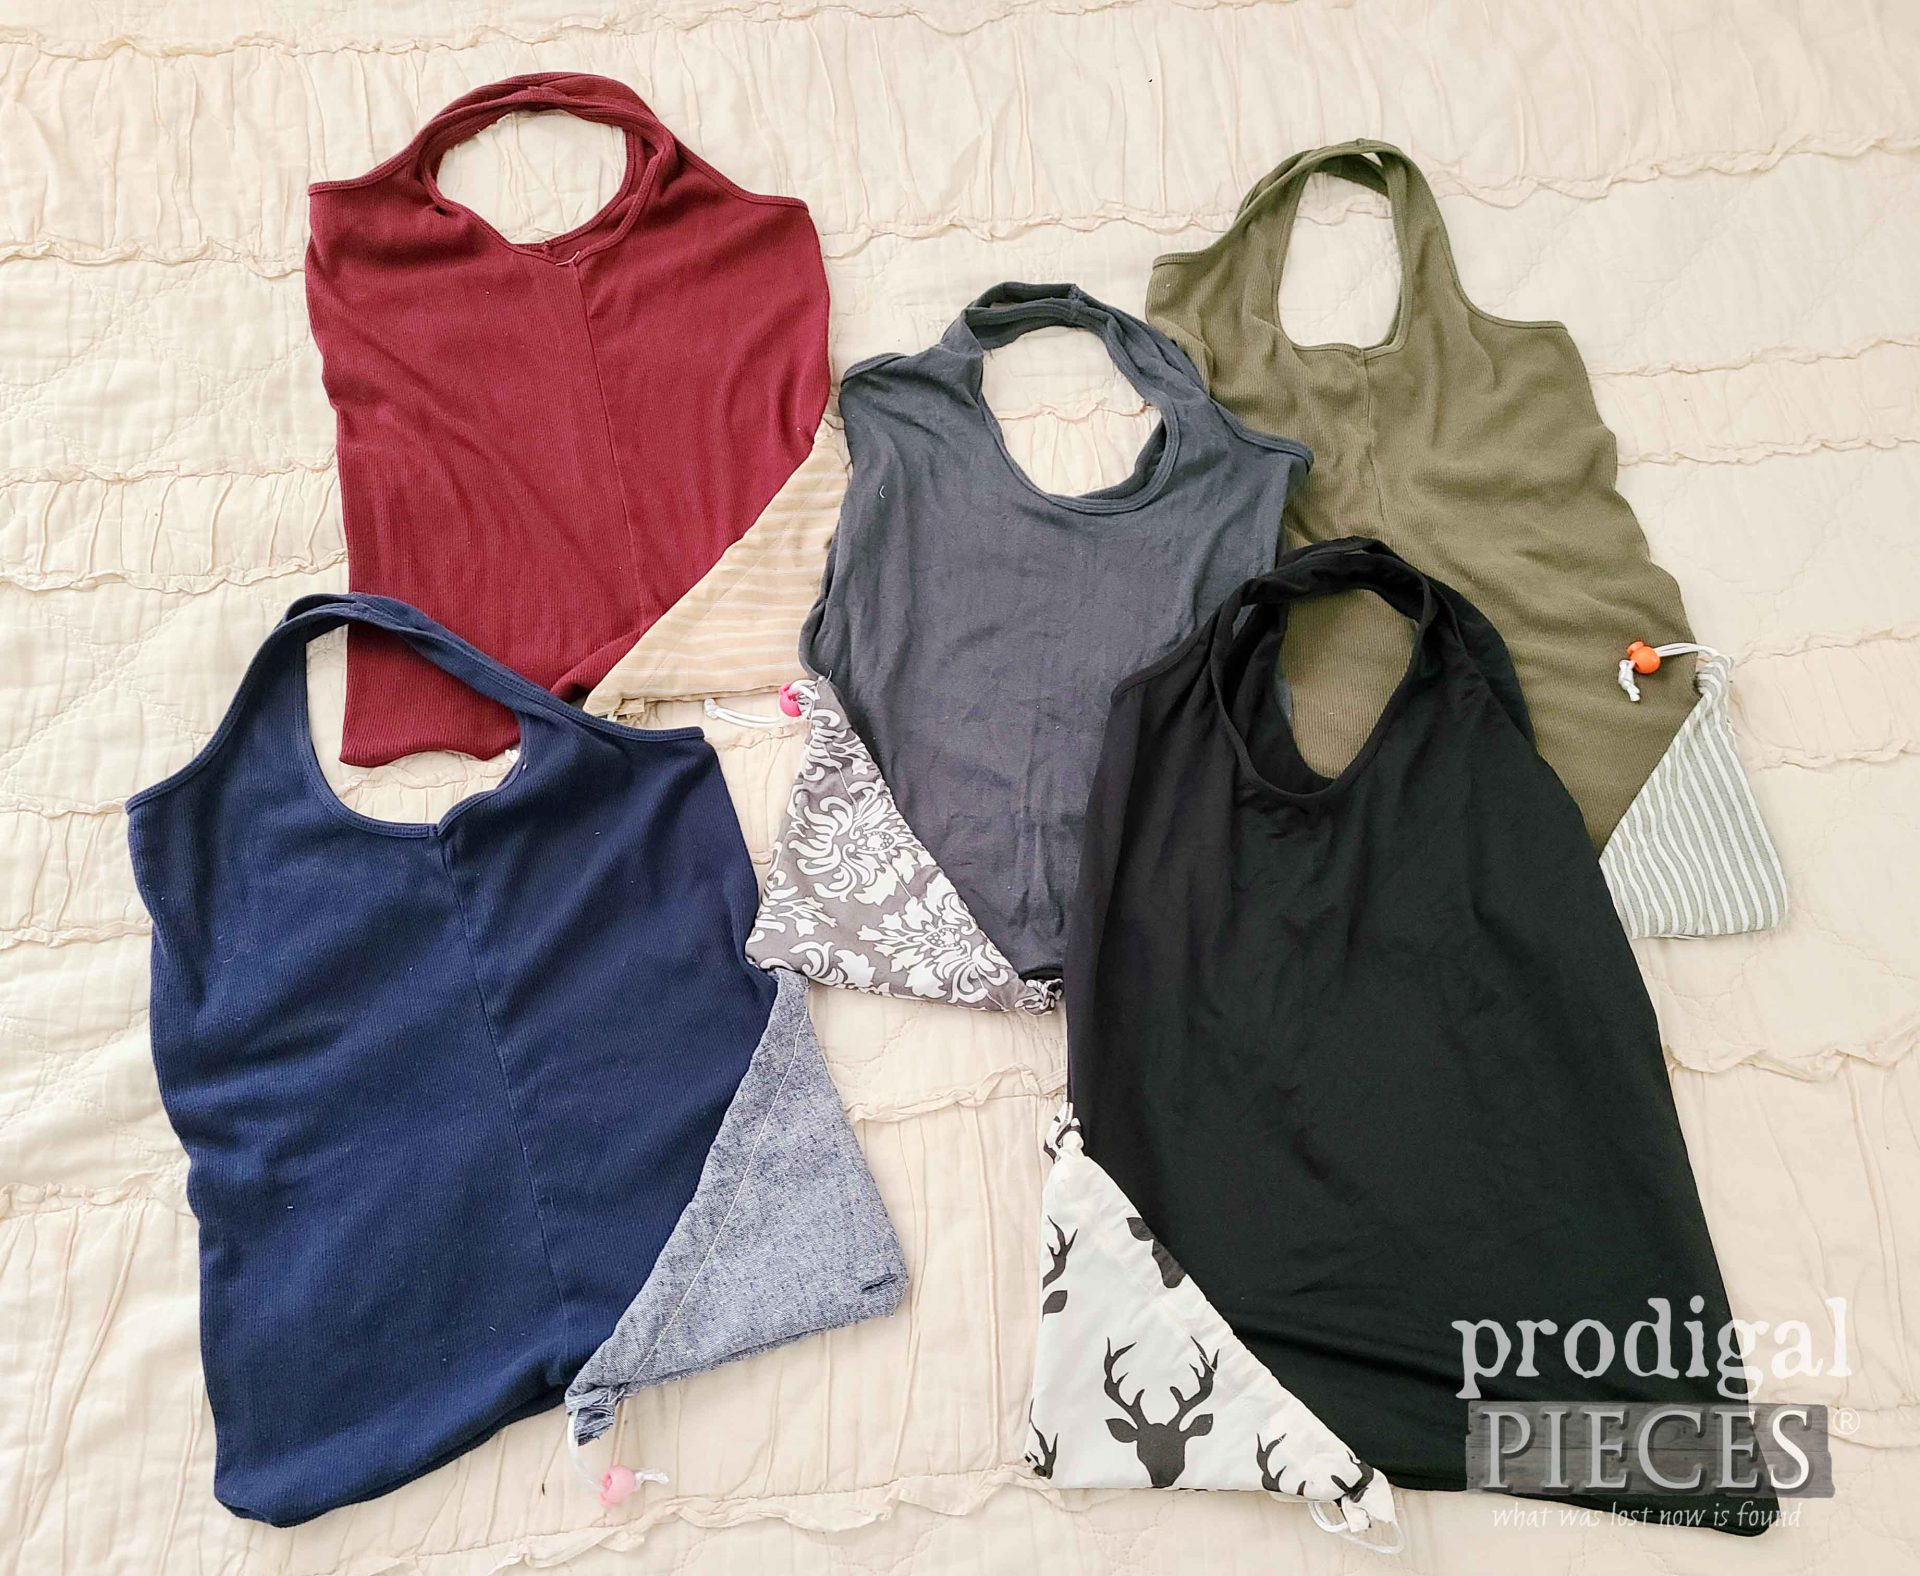 Set of Refashioned Tank Tops into Reusable Compact Shopping Bags   prodigalpieces.com #prodigalpieces #sewing #refashion